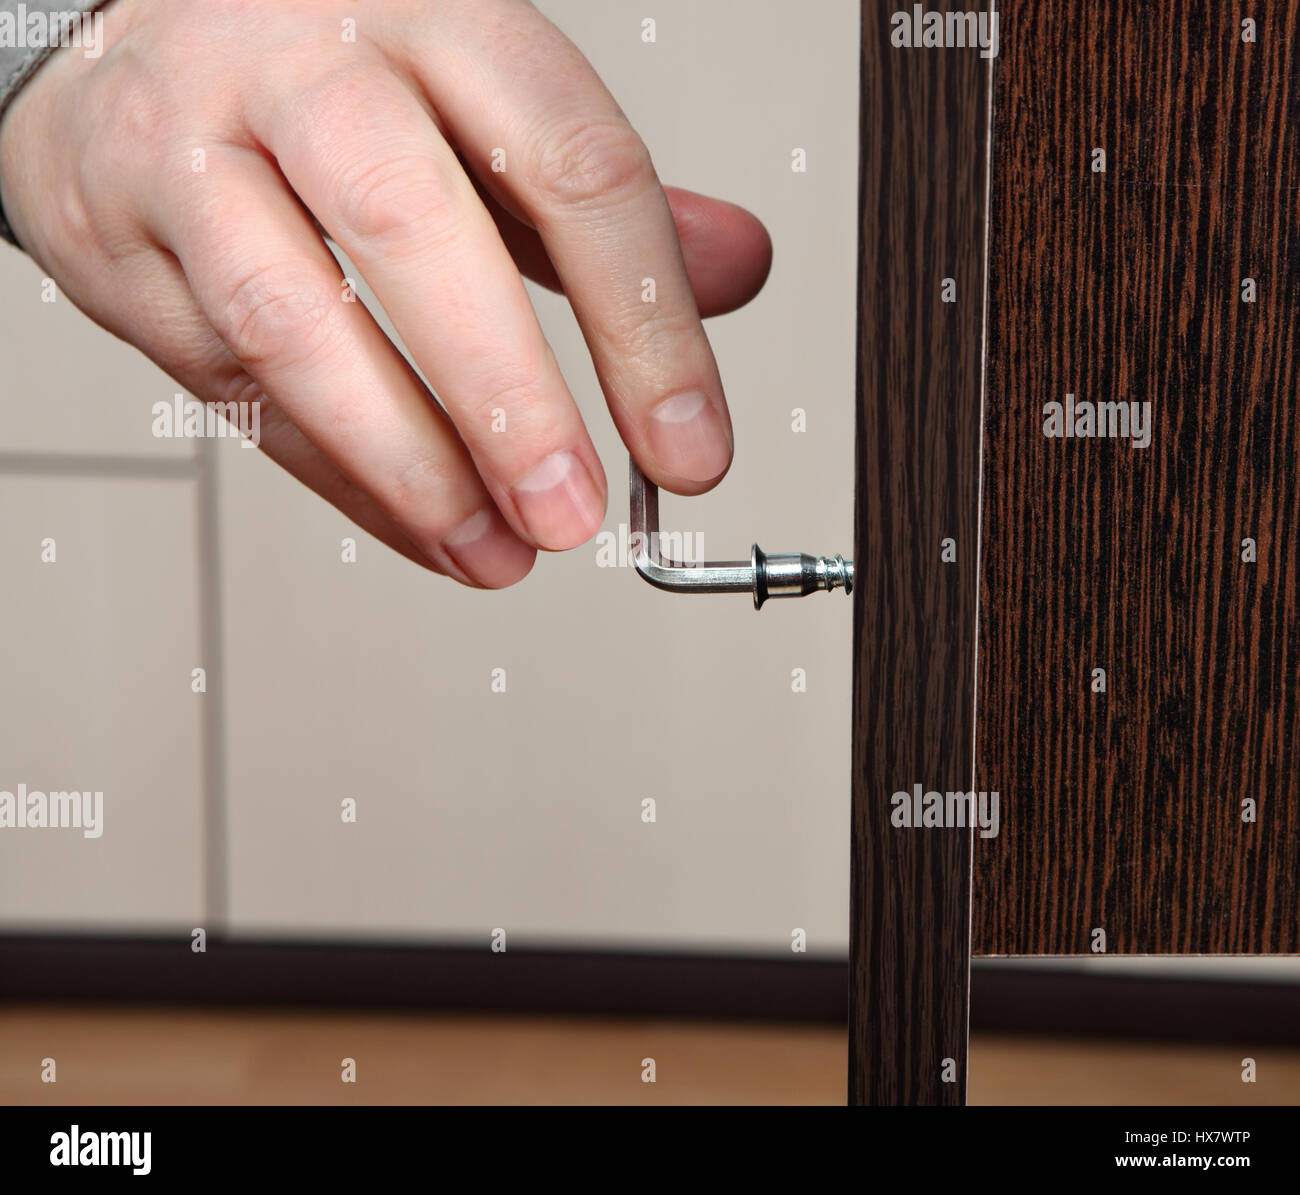 Closeup of a hand screw screwed Allen key, assembling furniture. Two board chipboard color dark brown wenge wood - Stock Image